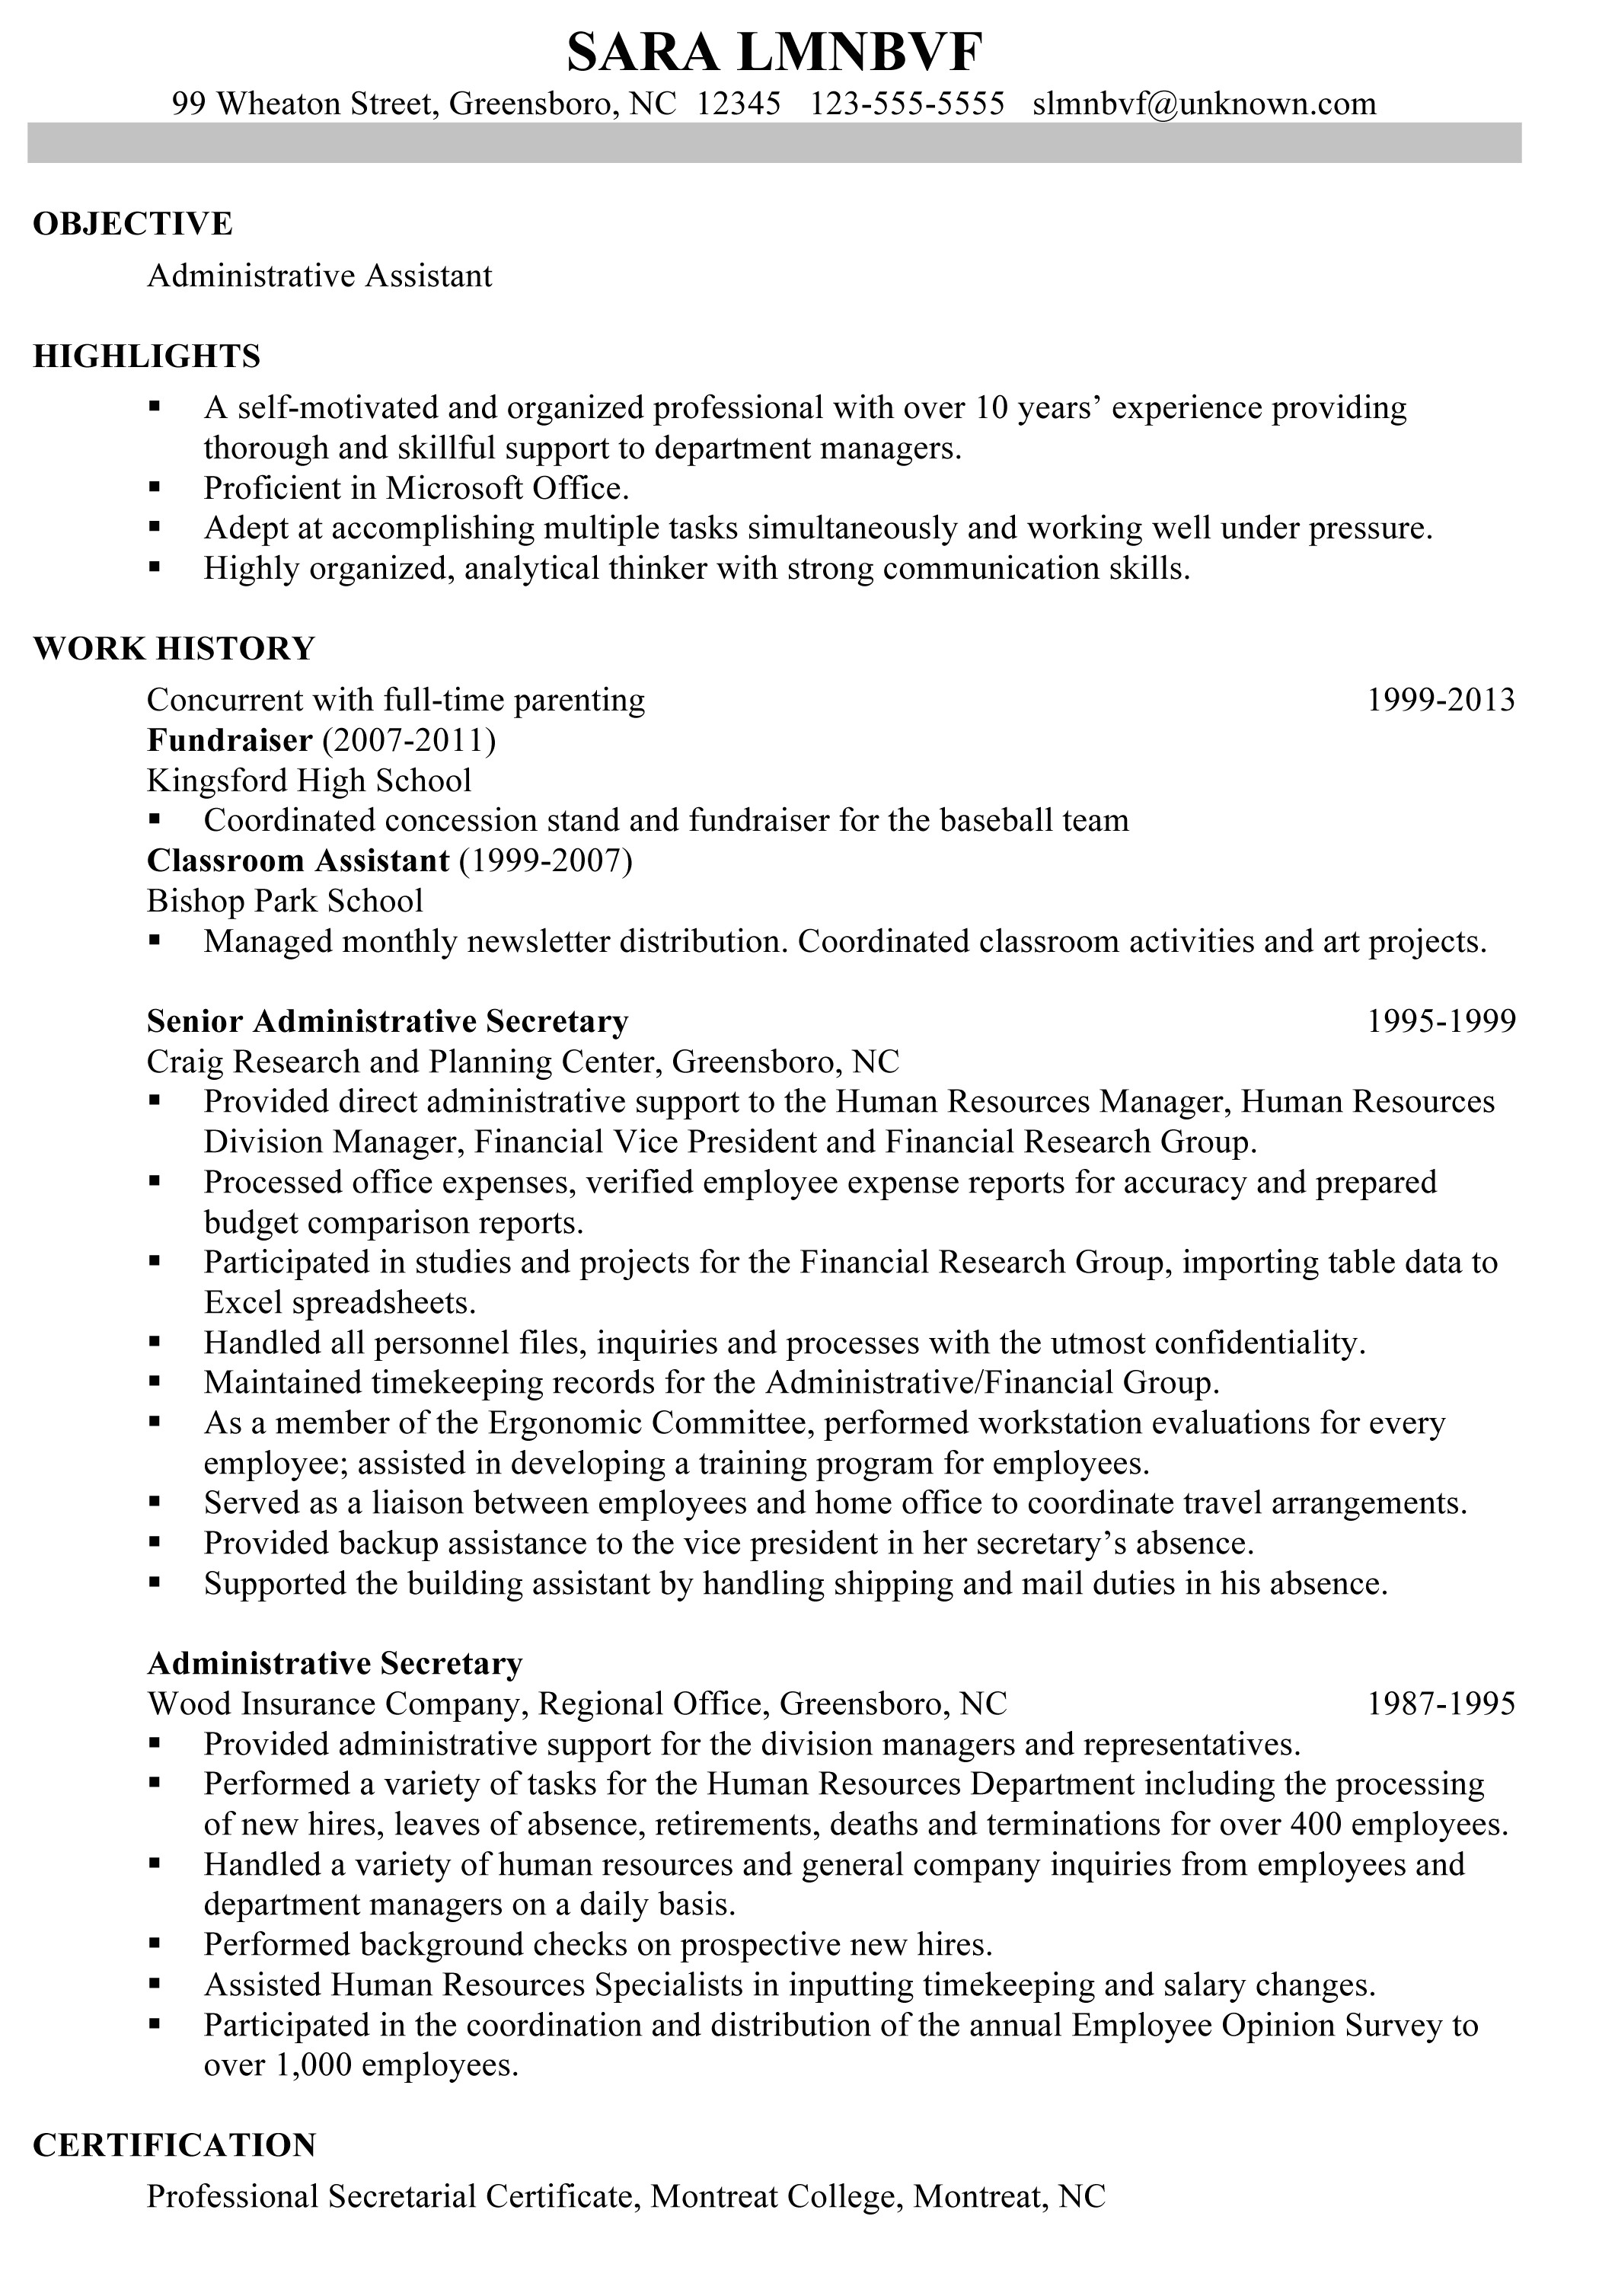 chronological resume sample administrative assistant